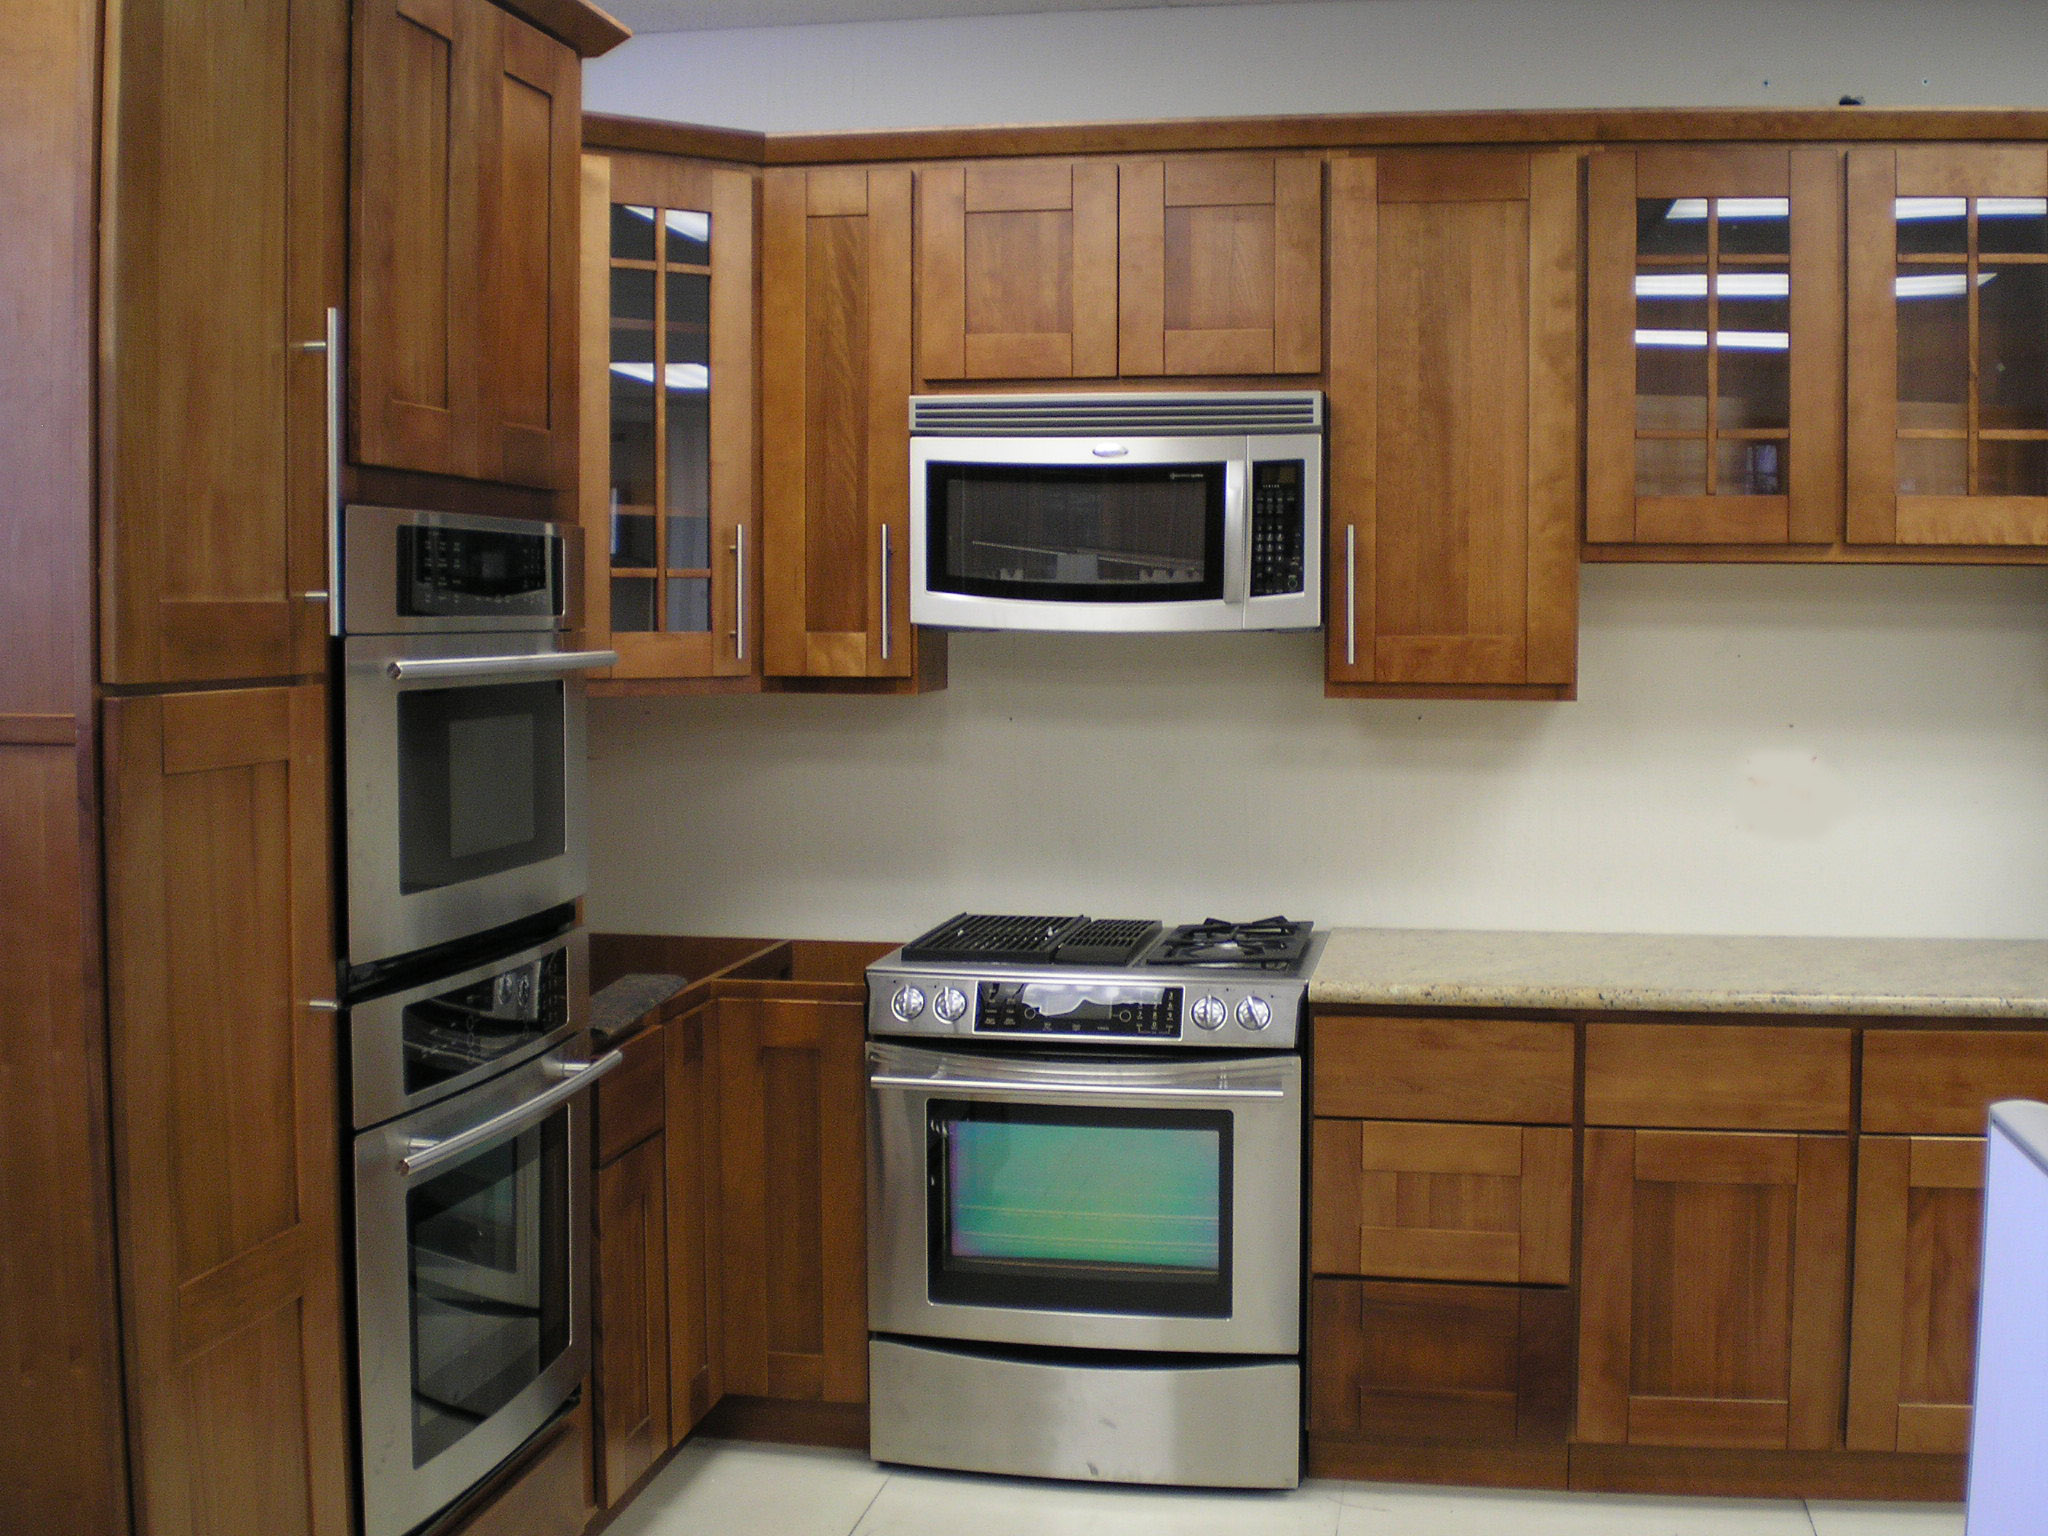 cherry kitchen cabinets wood kitchen cabinets Raised Panel Shaker Style Toffee Finish